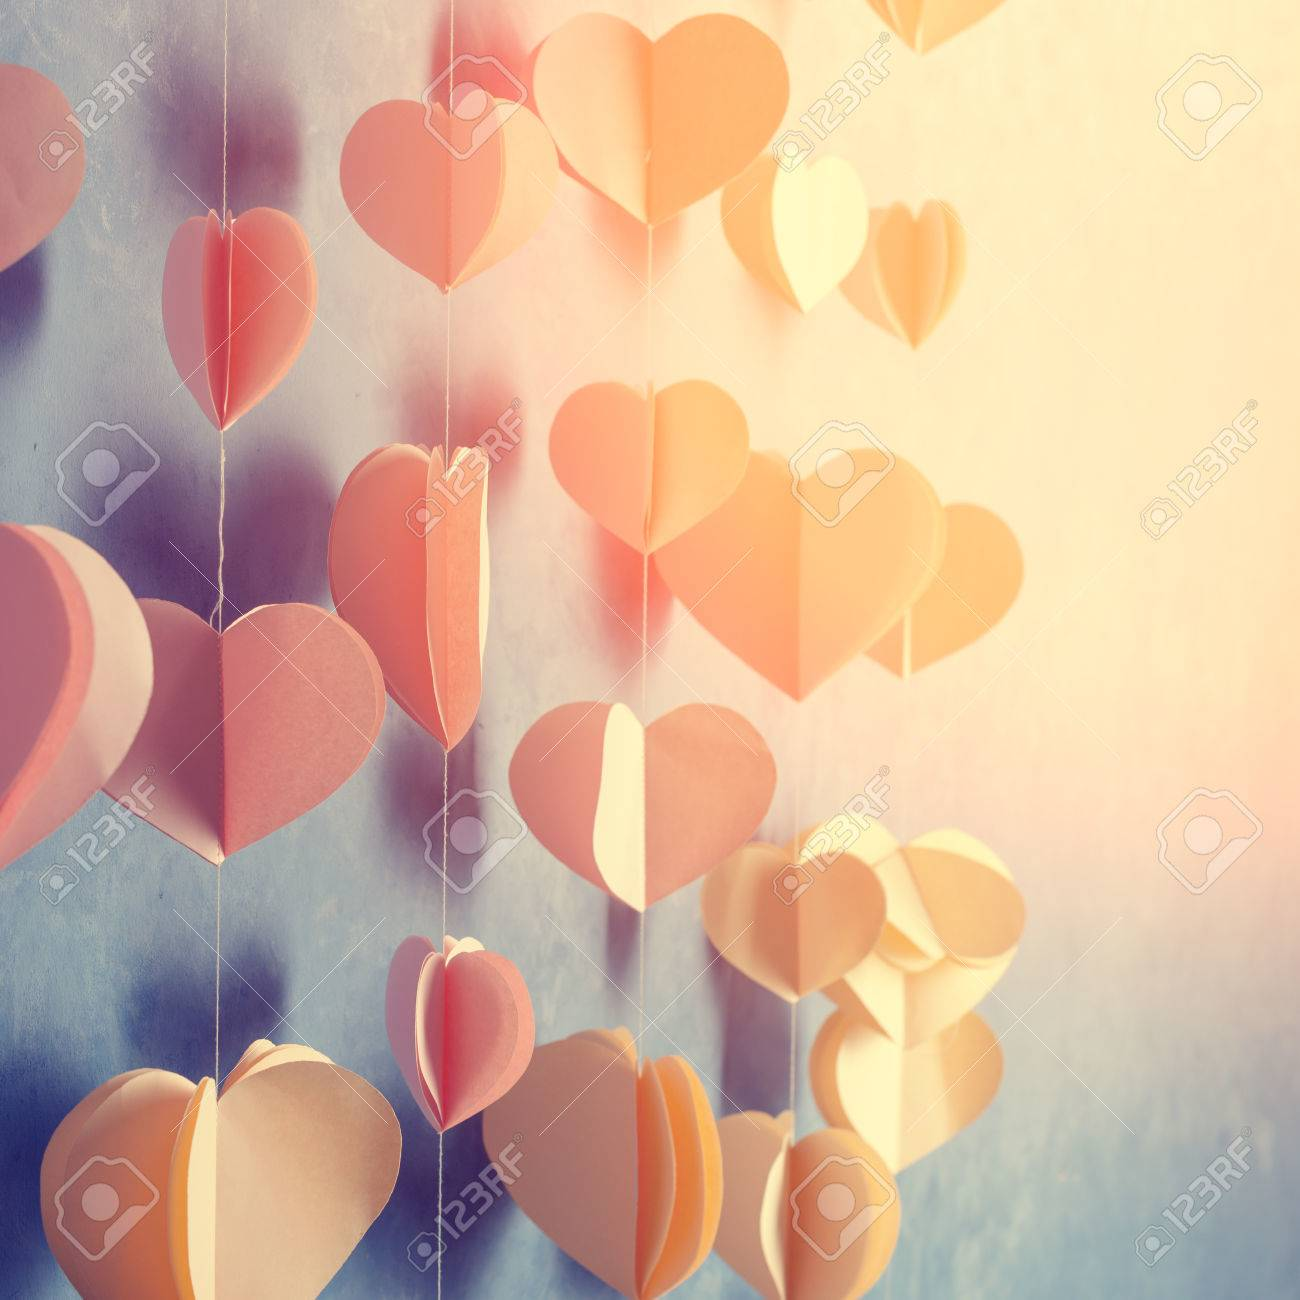 Colorful Hearts Paper Garland Hanging On The Wall. Romantic ...